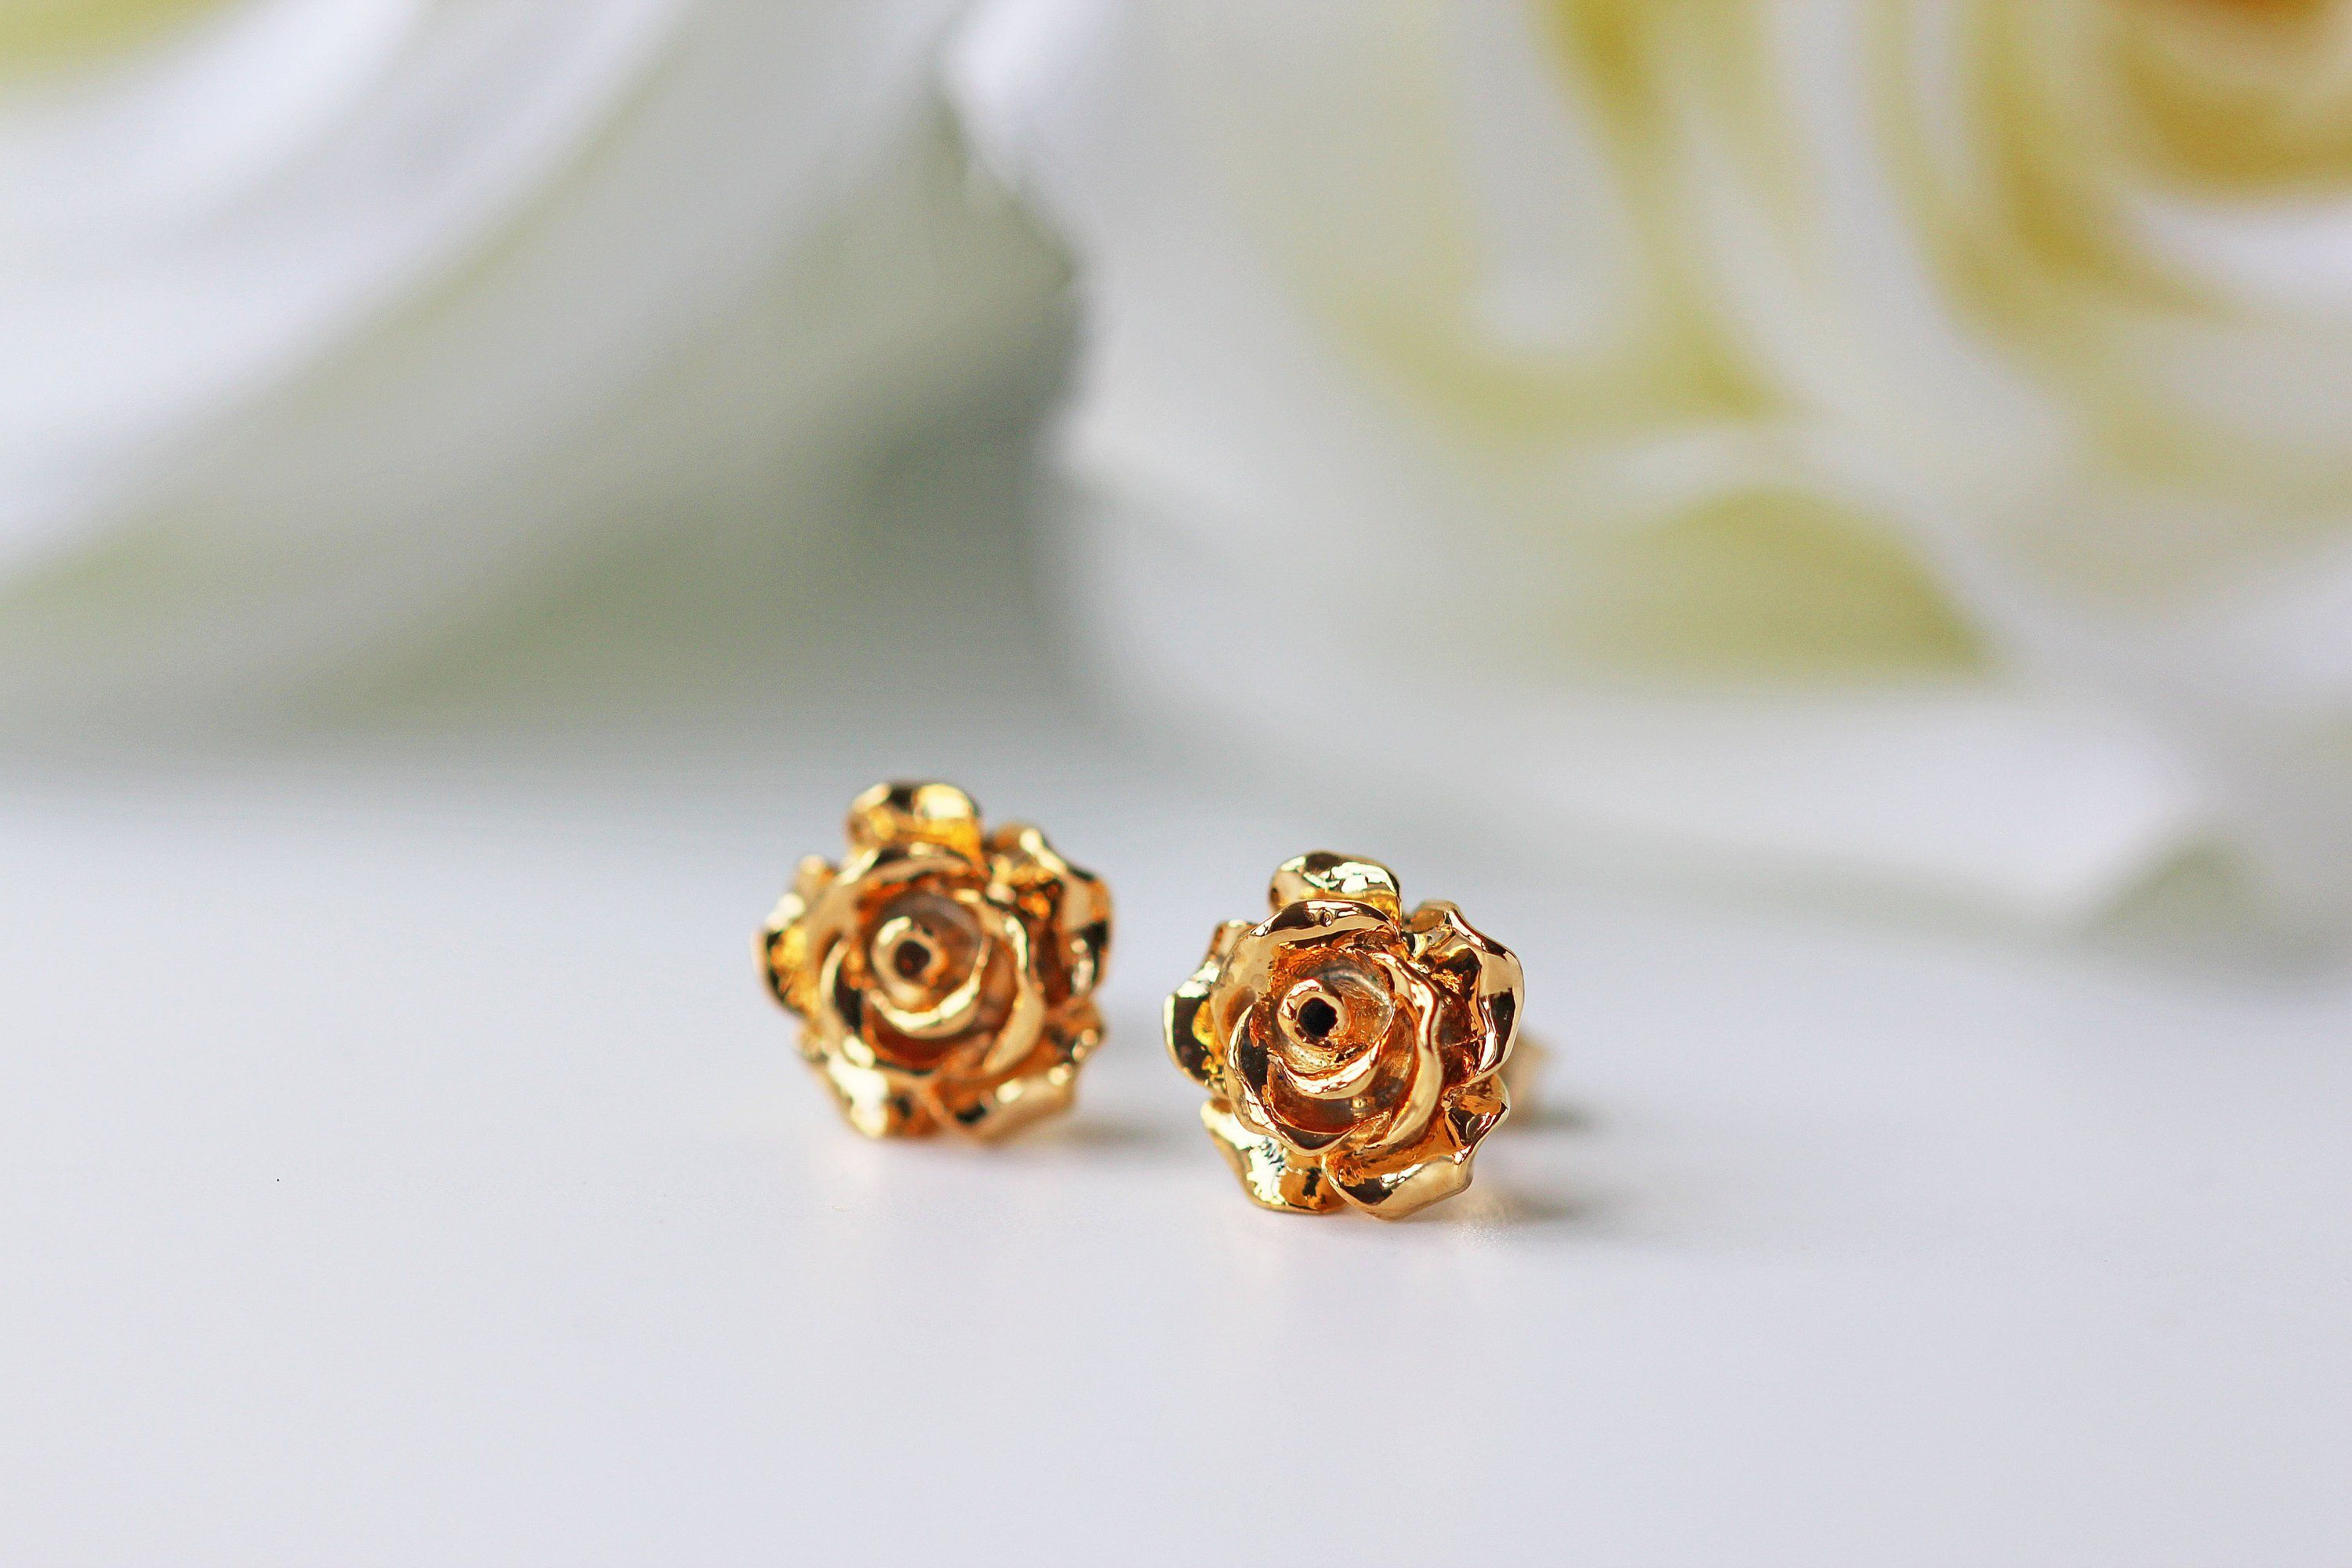 Gold Rose Flower Stud Earrings Rose Valentine Love Stud Earrings Rose Earrings Earrings